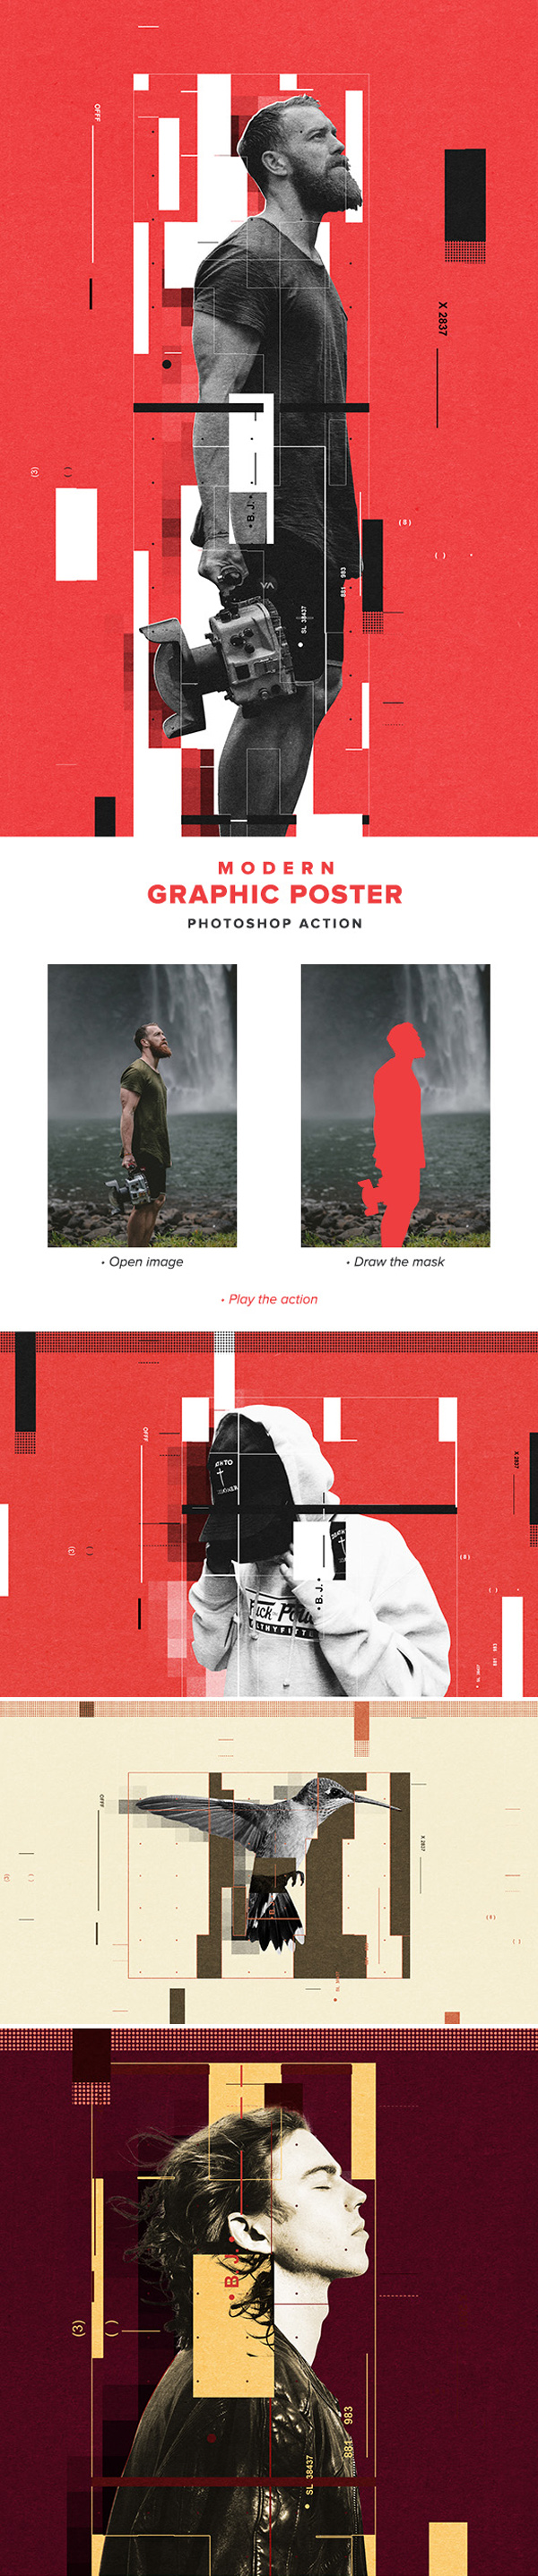 Modern Graphic Poster Action